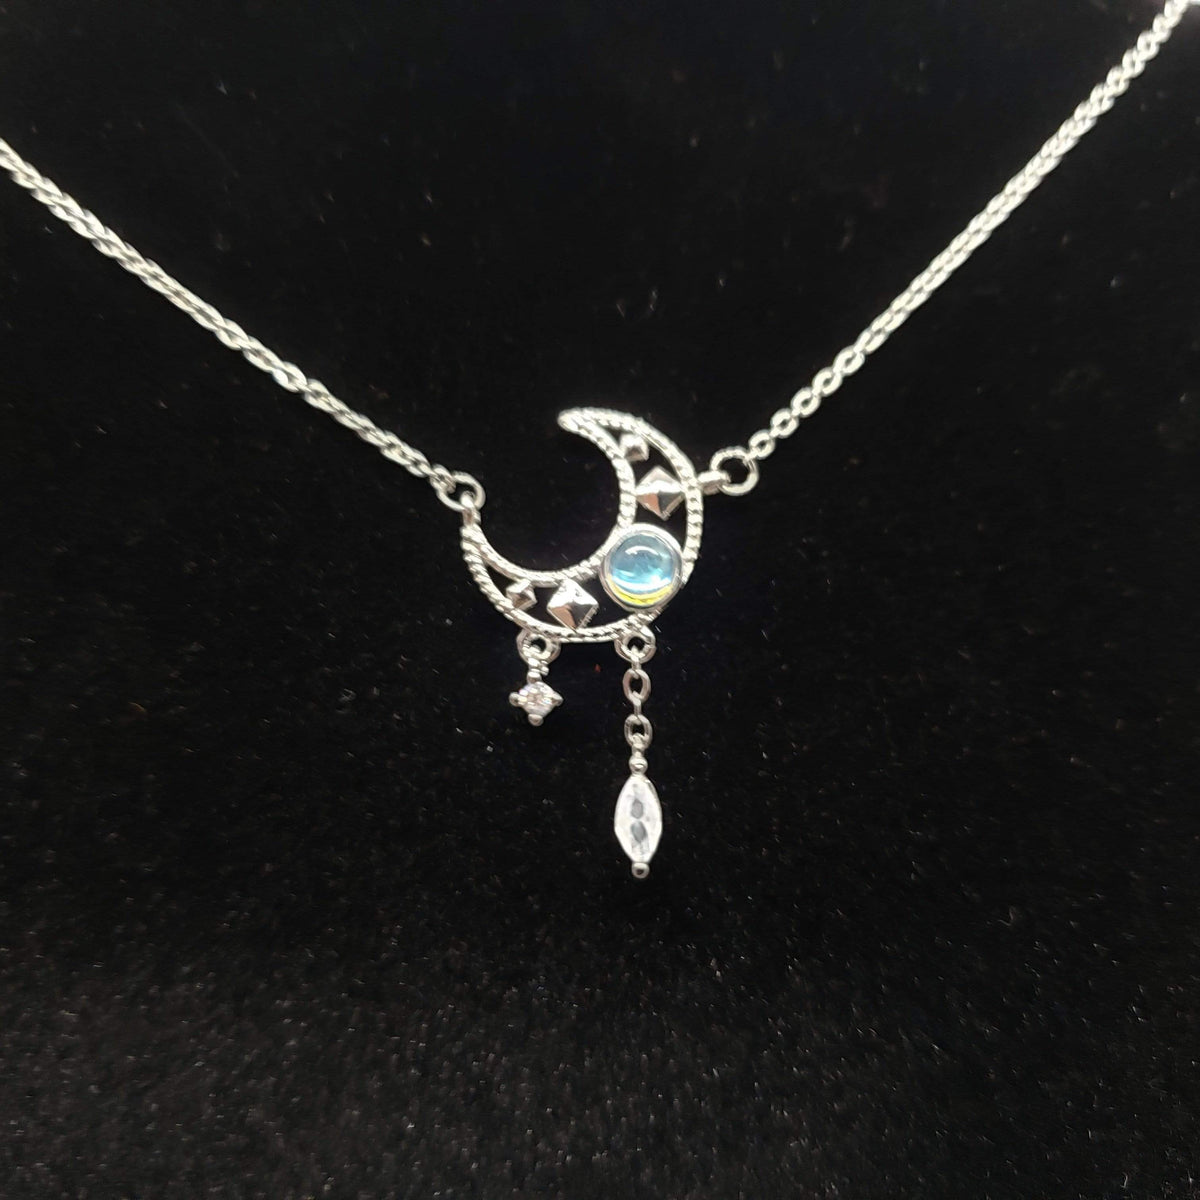 Spellbound Moon - Moonstone Necklace Chain Necklaces